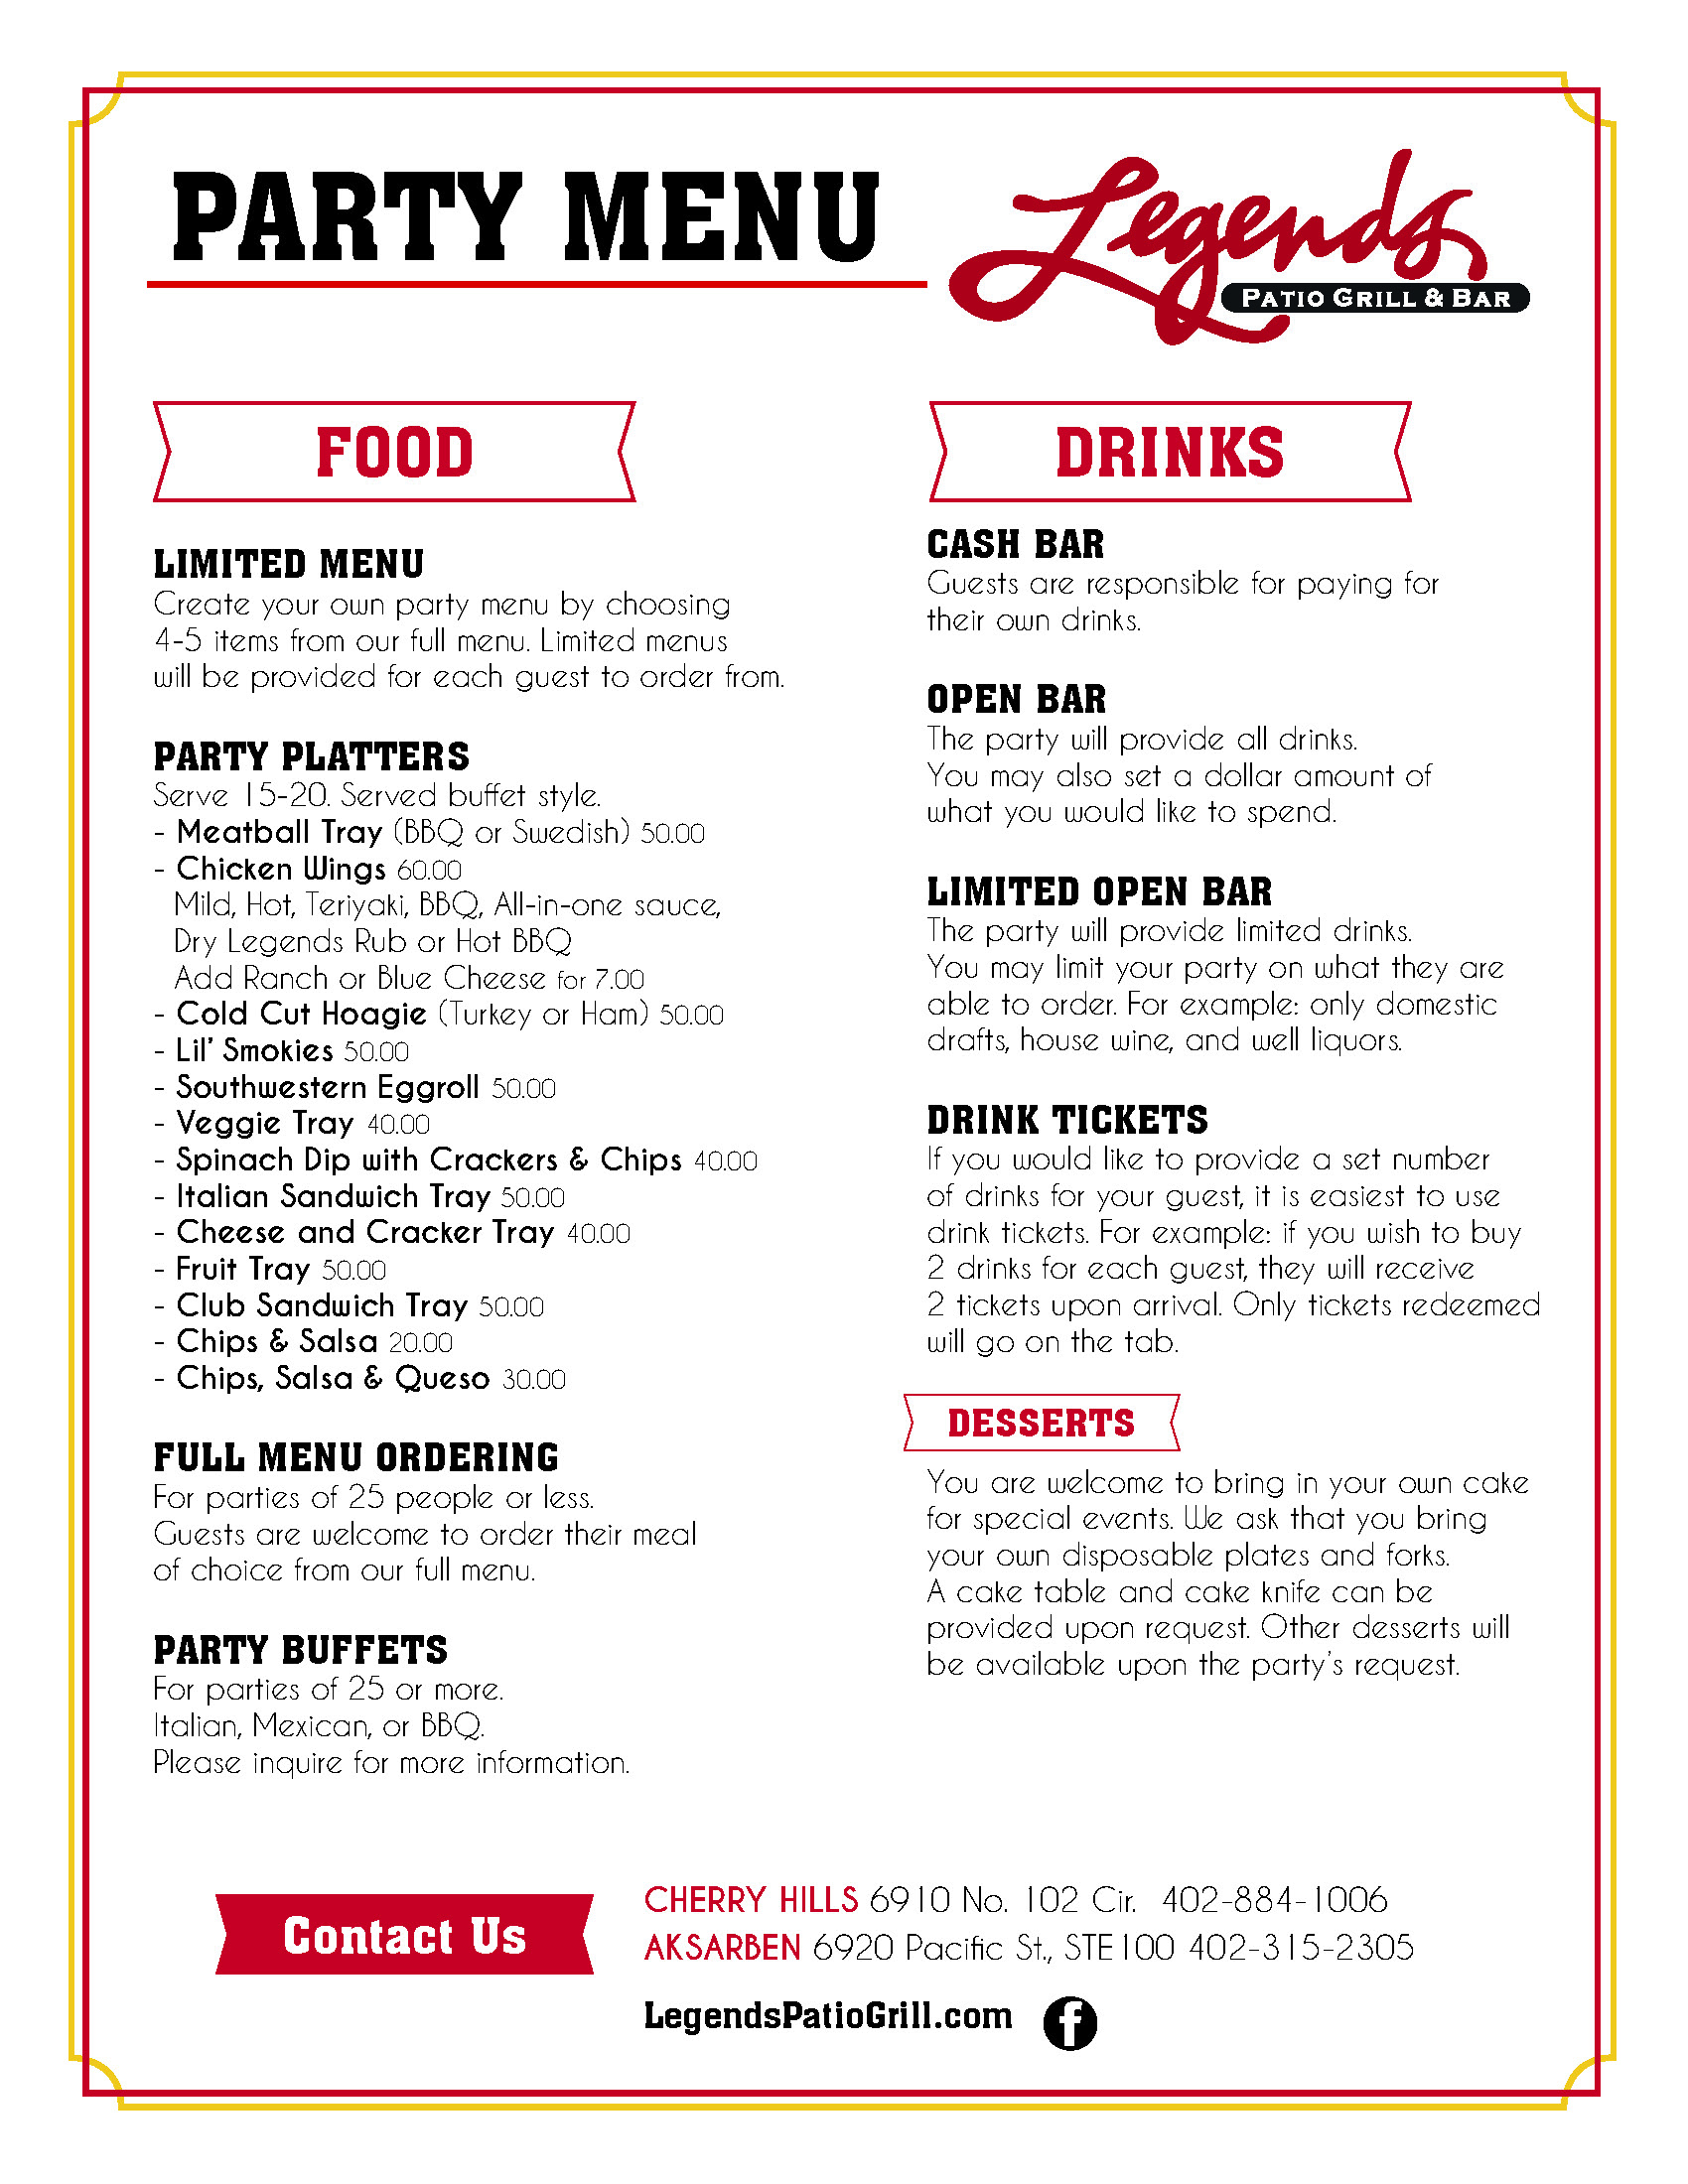 legends_partymenu_print